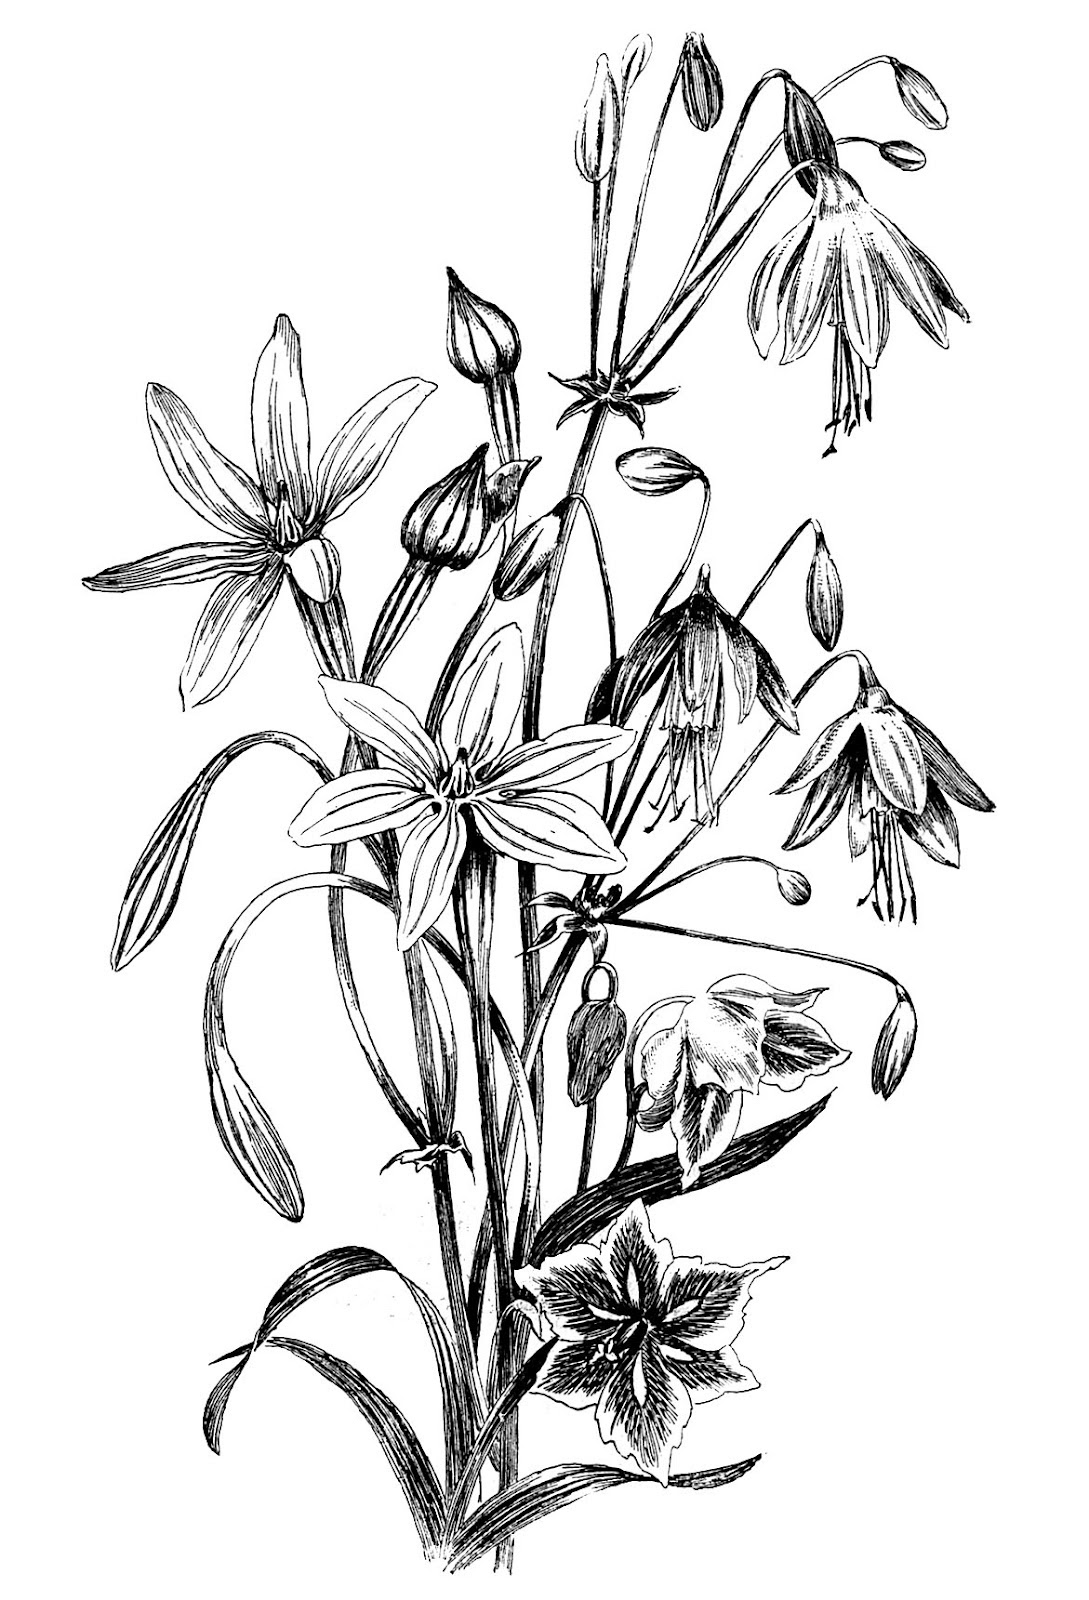 Free Drawings Of Flowers In Black And White Download Free Clip Art